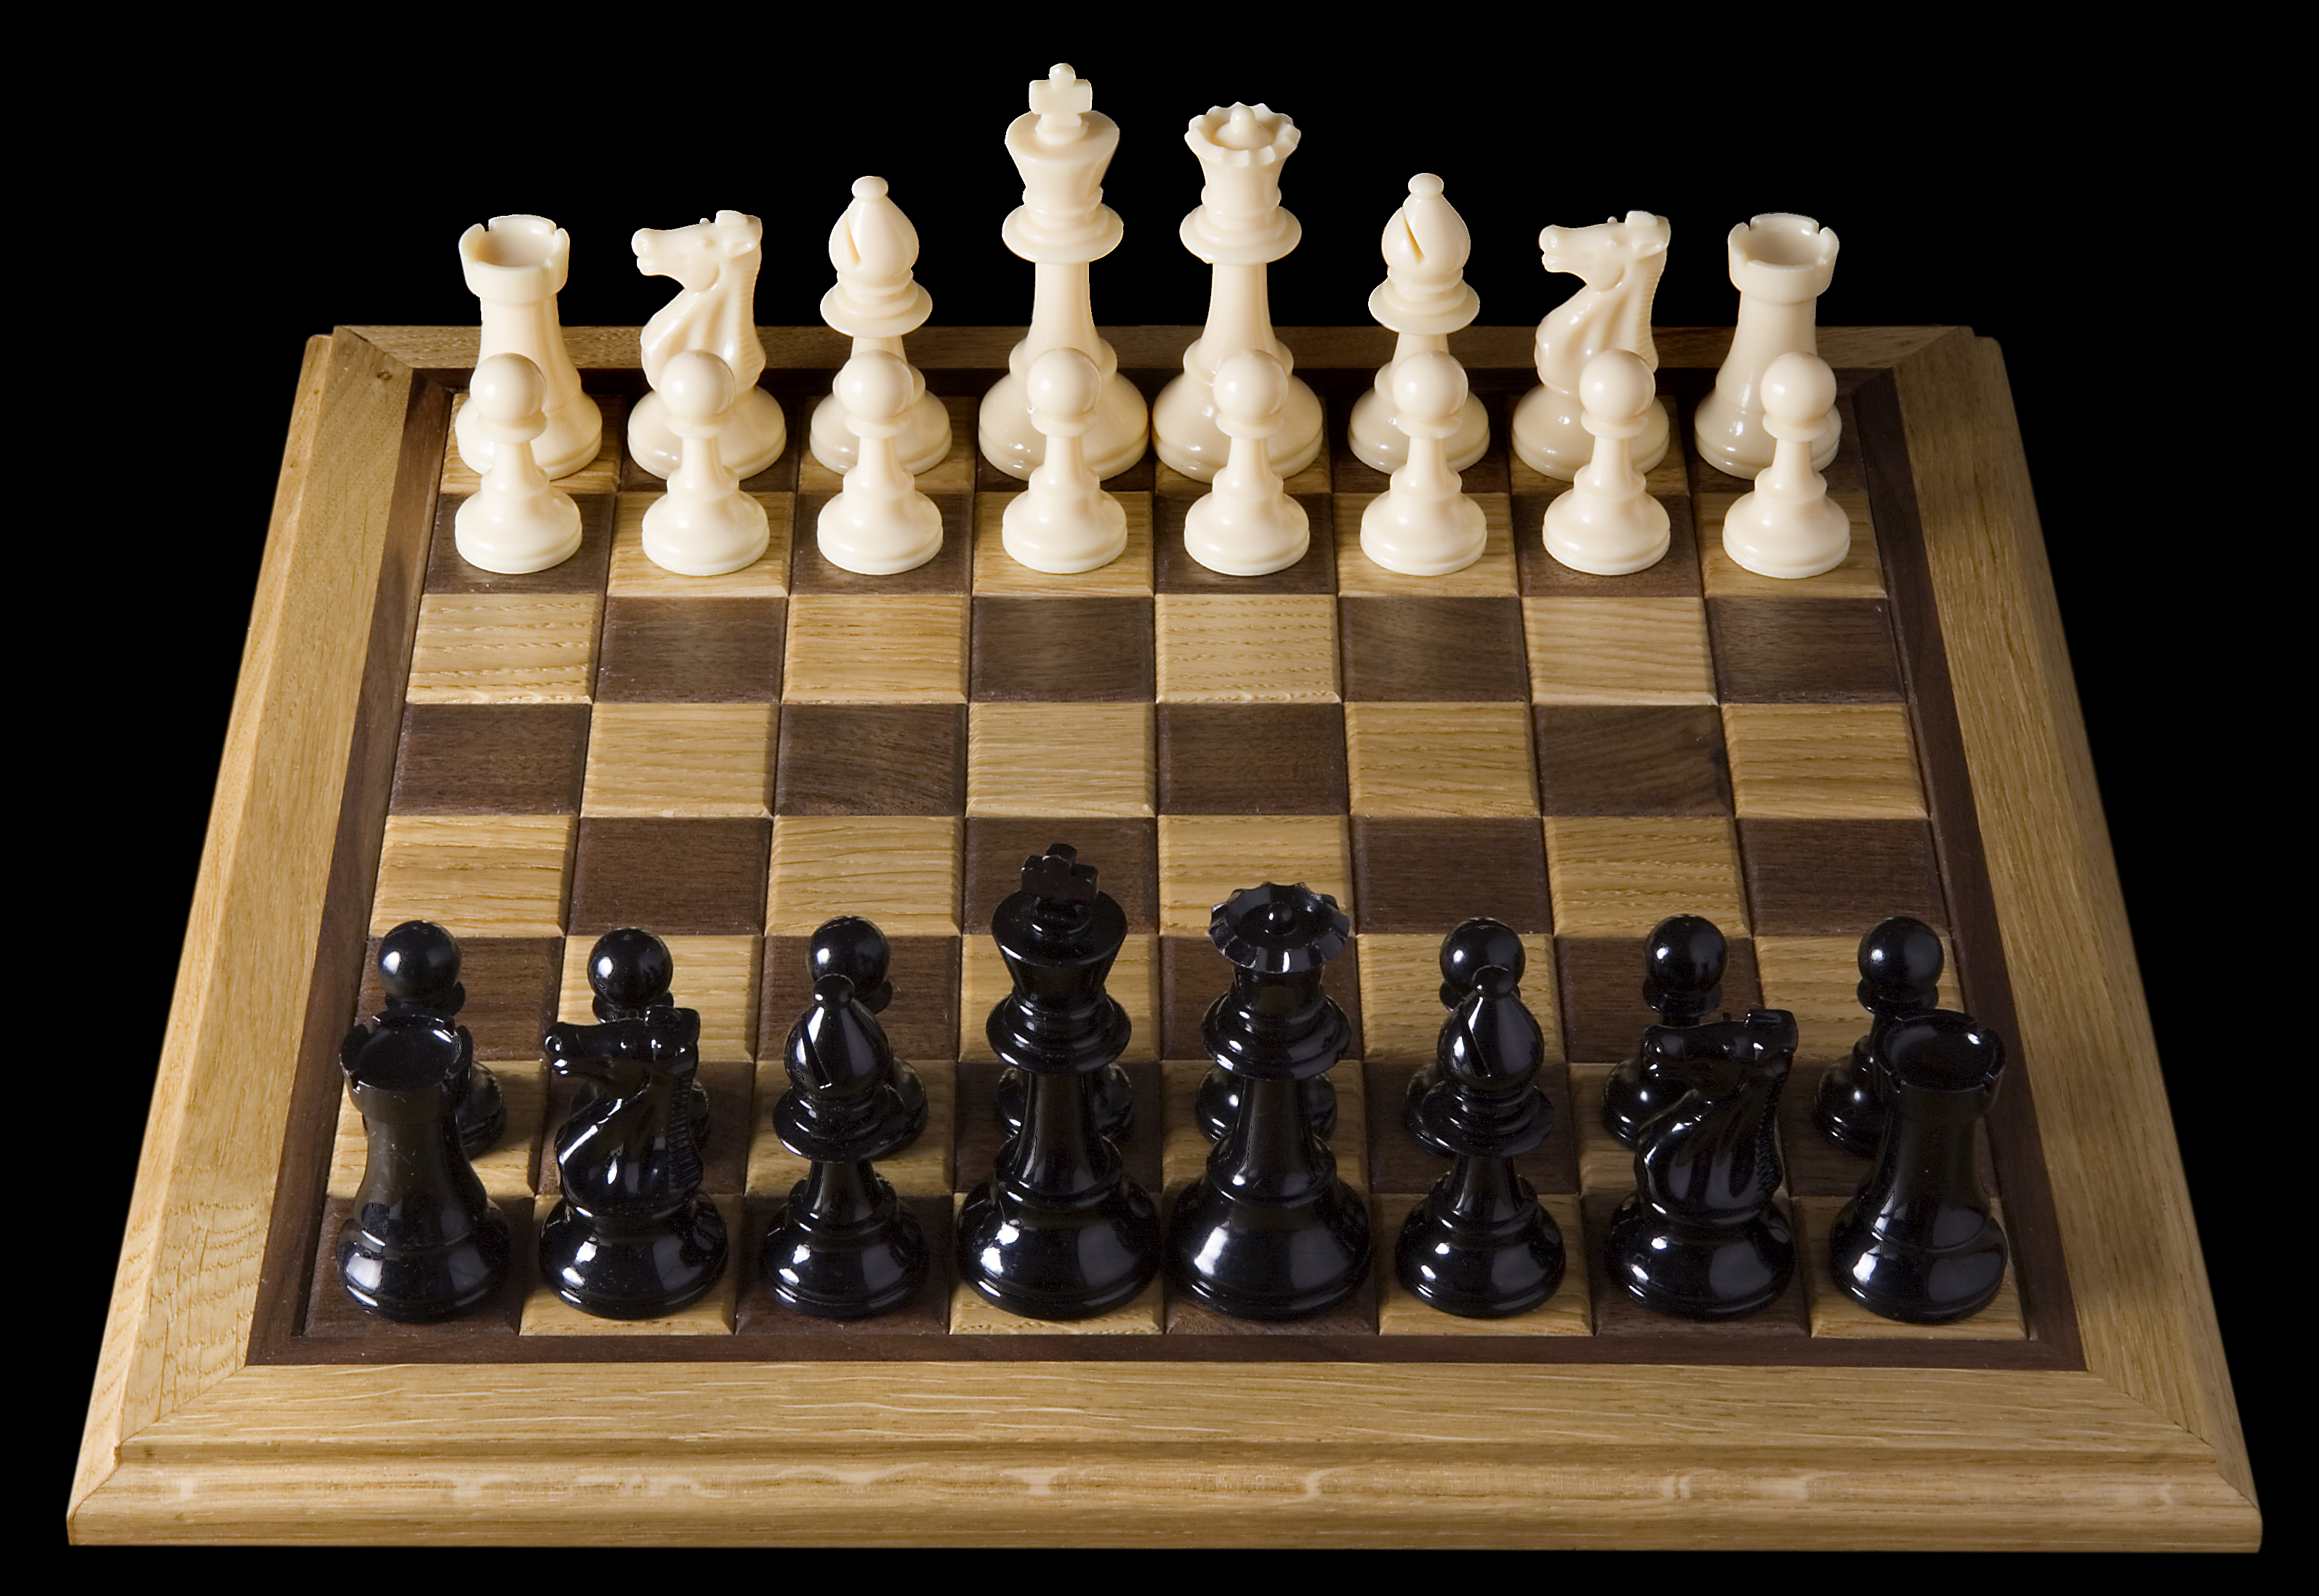 Opening_chess_position_from_black_side.jpg (3190×2196)